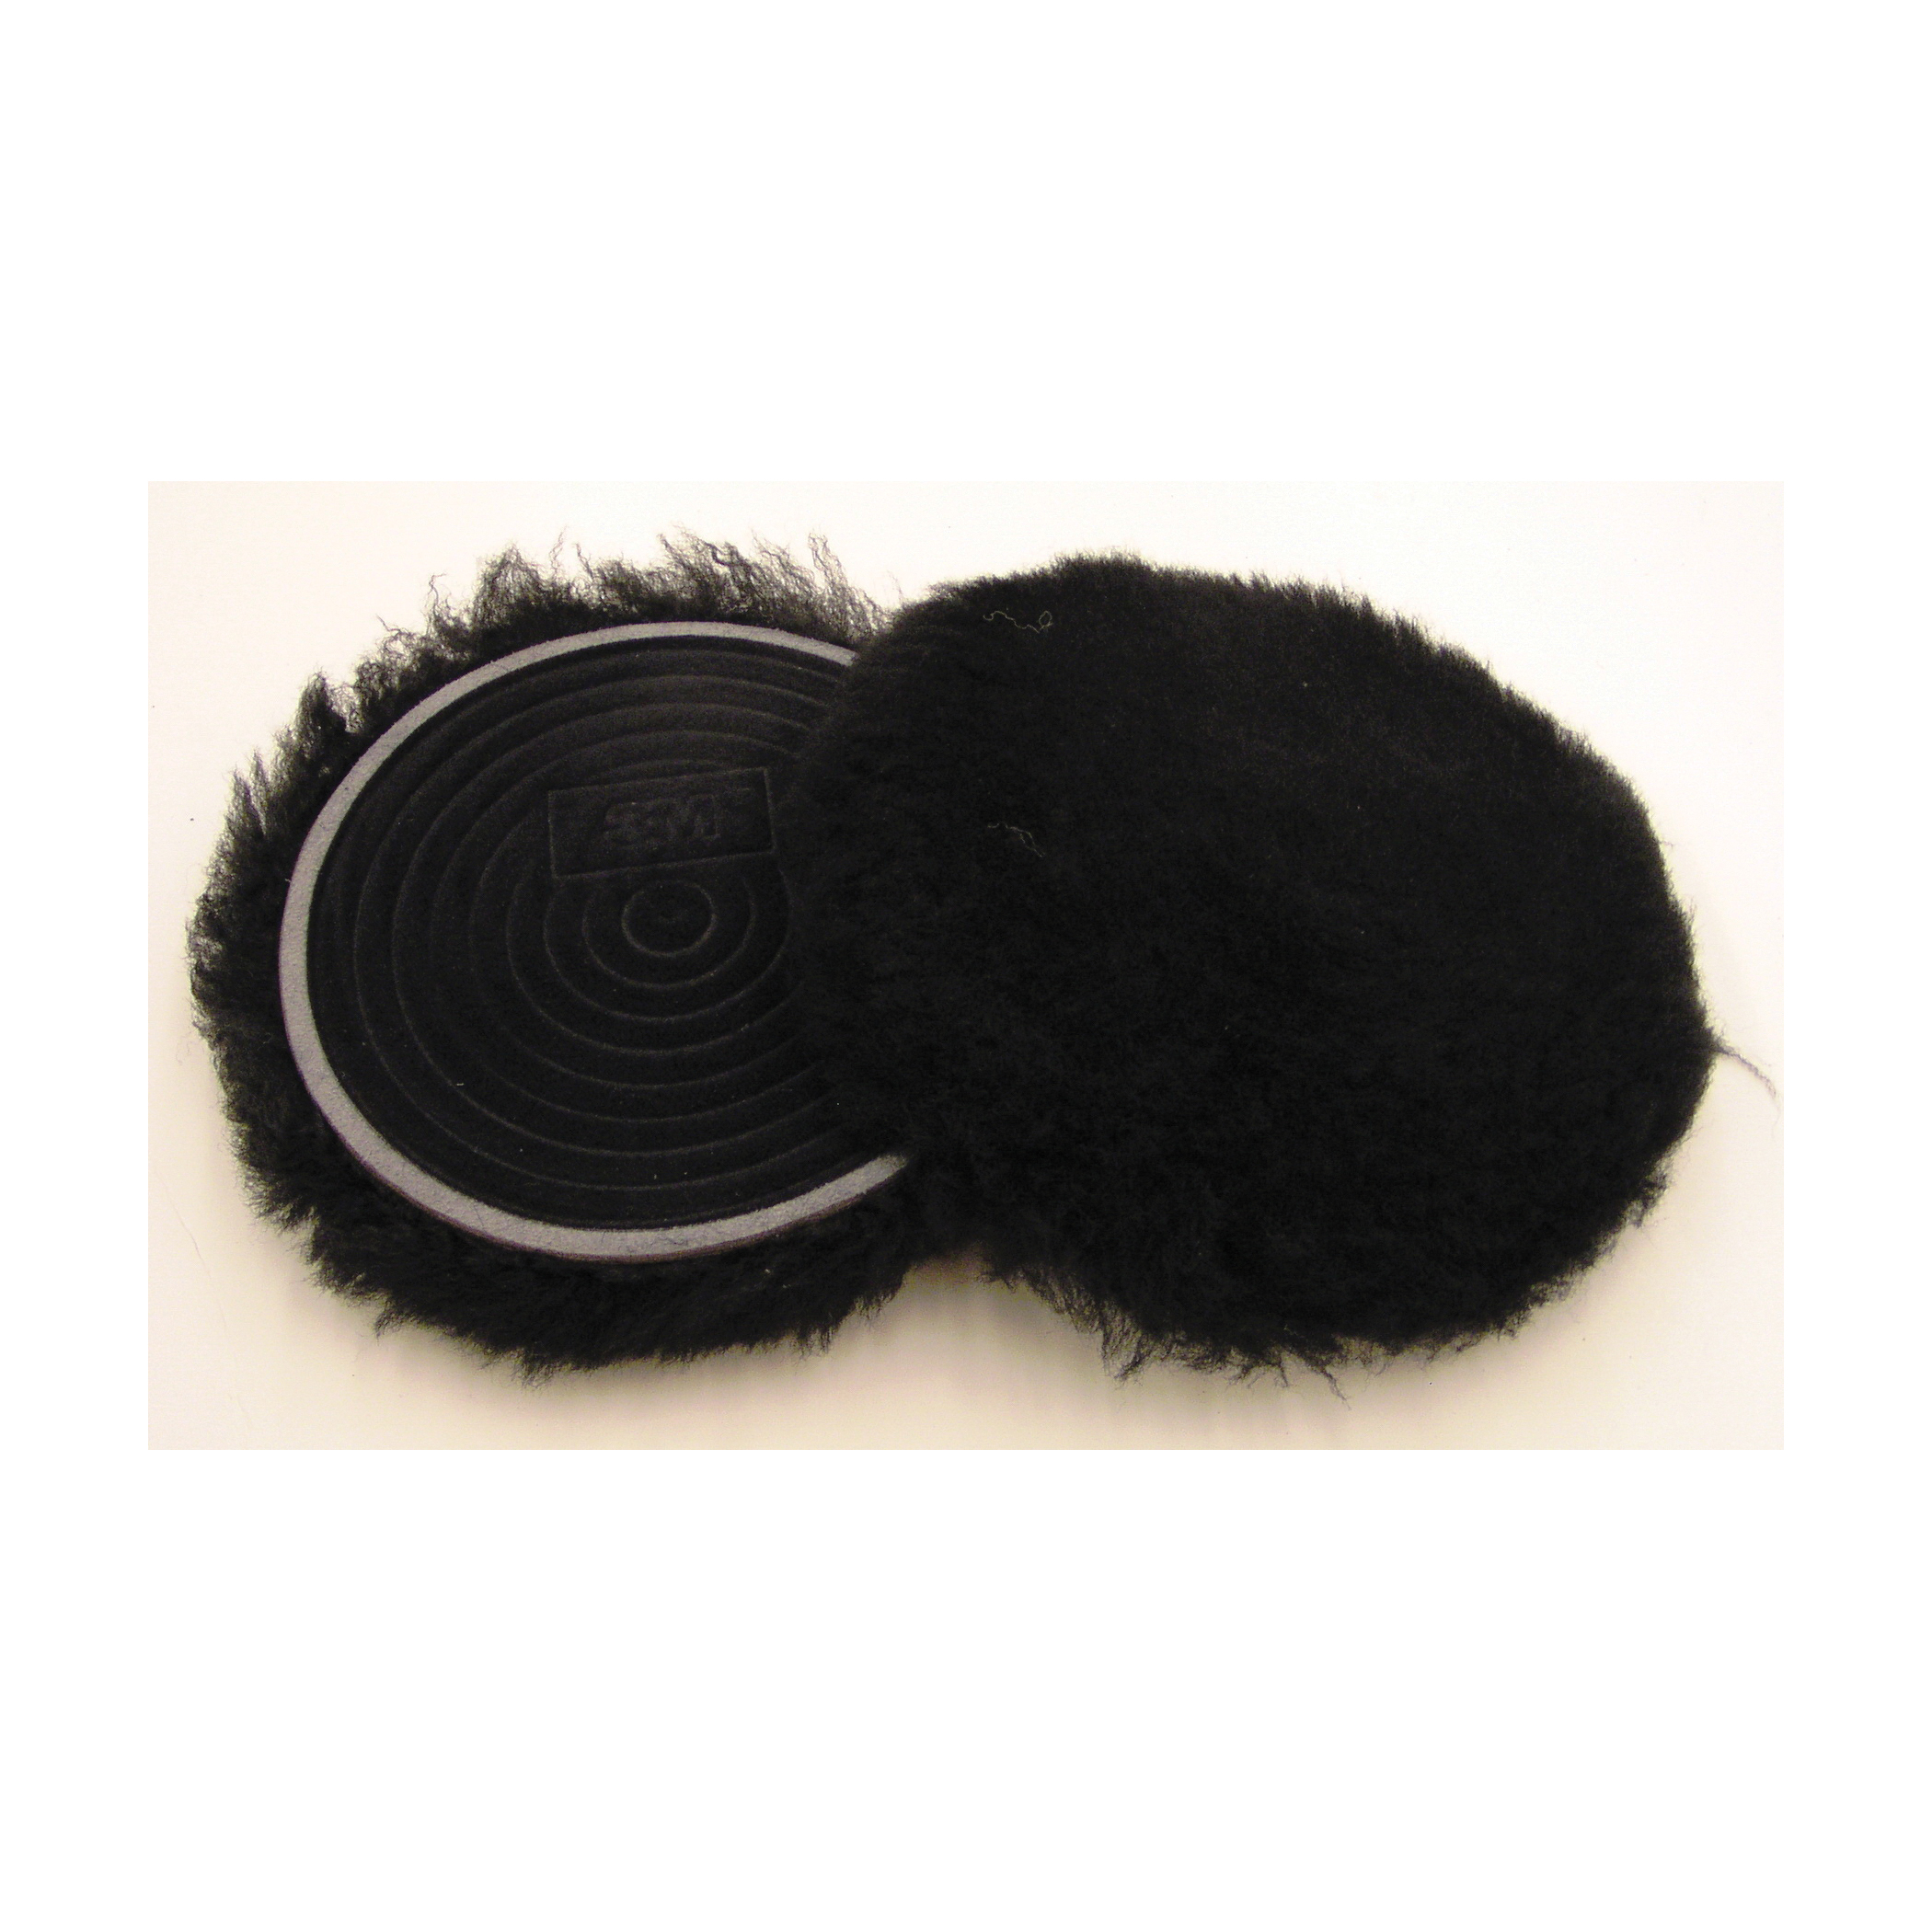 3M™ Finesse-it™ 051144-85100 Natural Regular Buffing Pad, 5-1/4 in Dia, Hook and Loop Attachment, Wool Pad